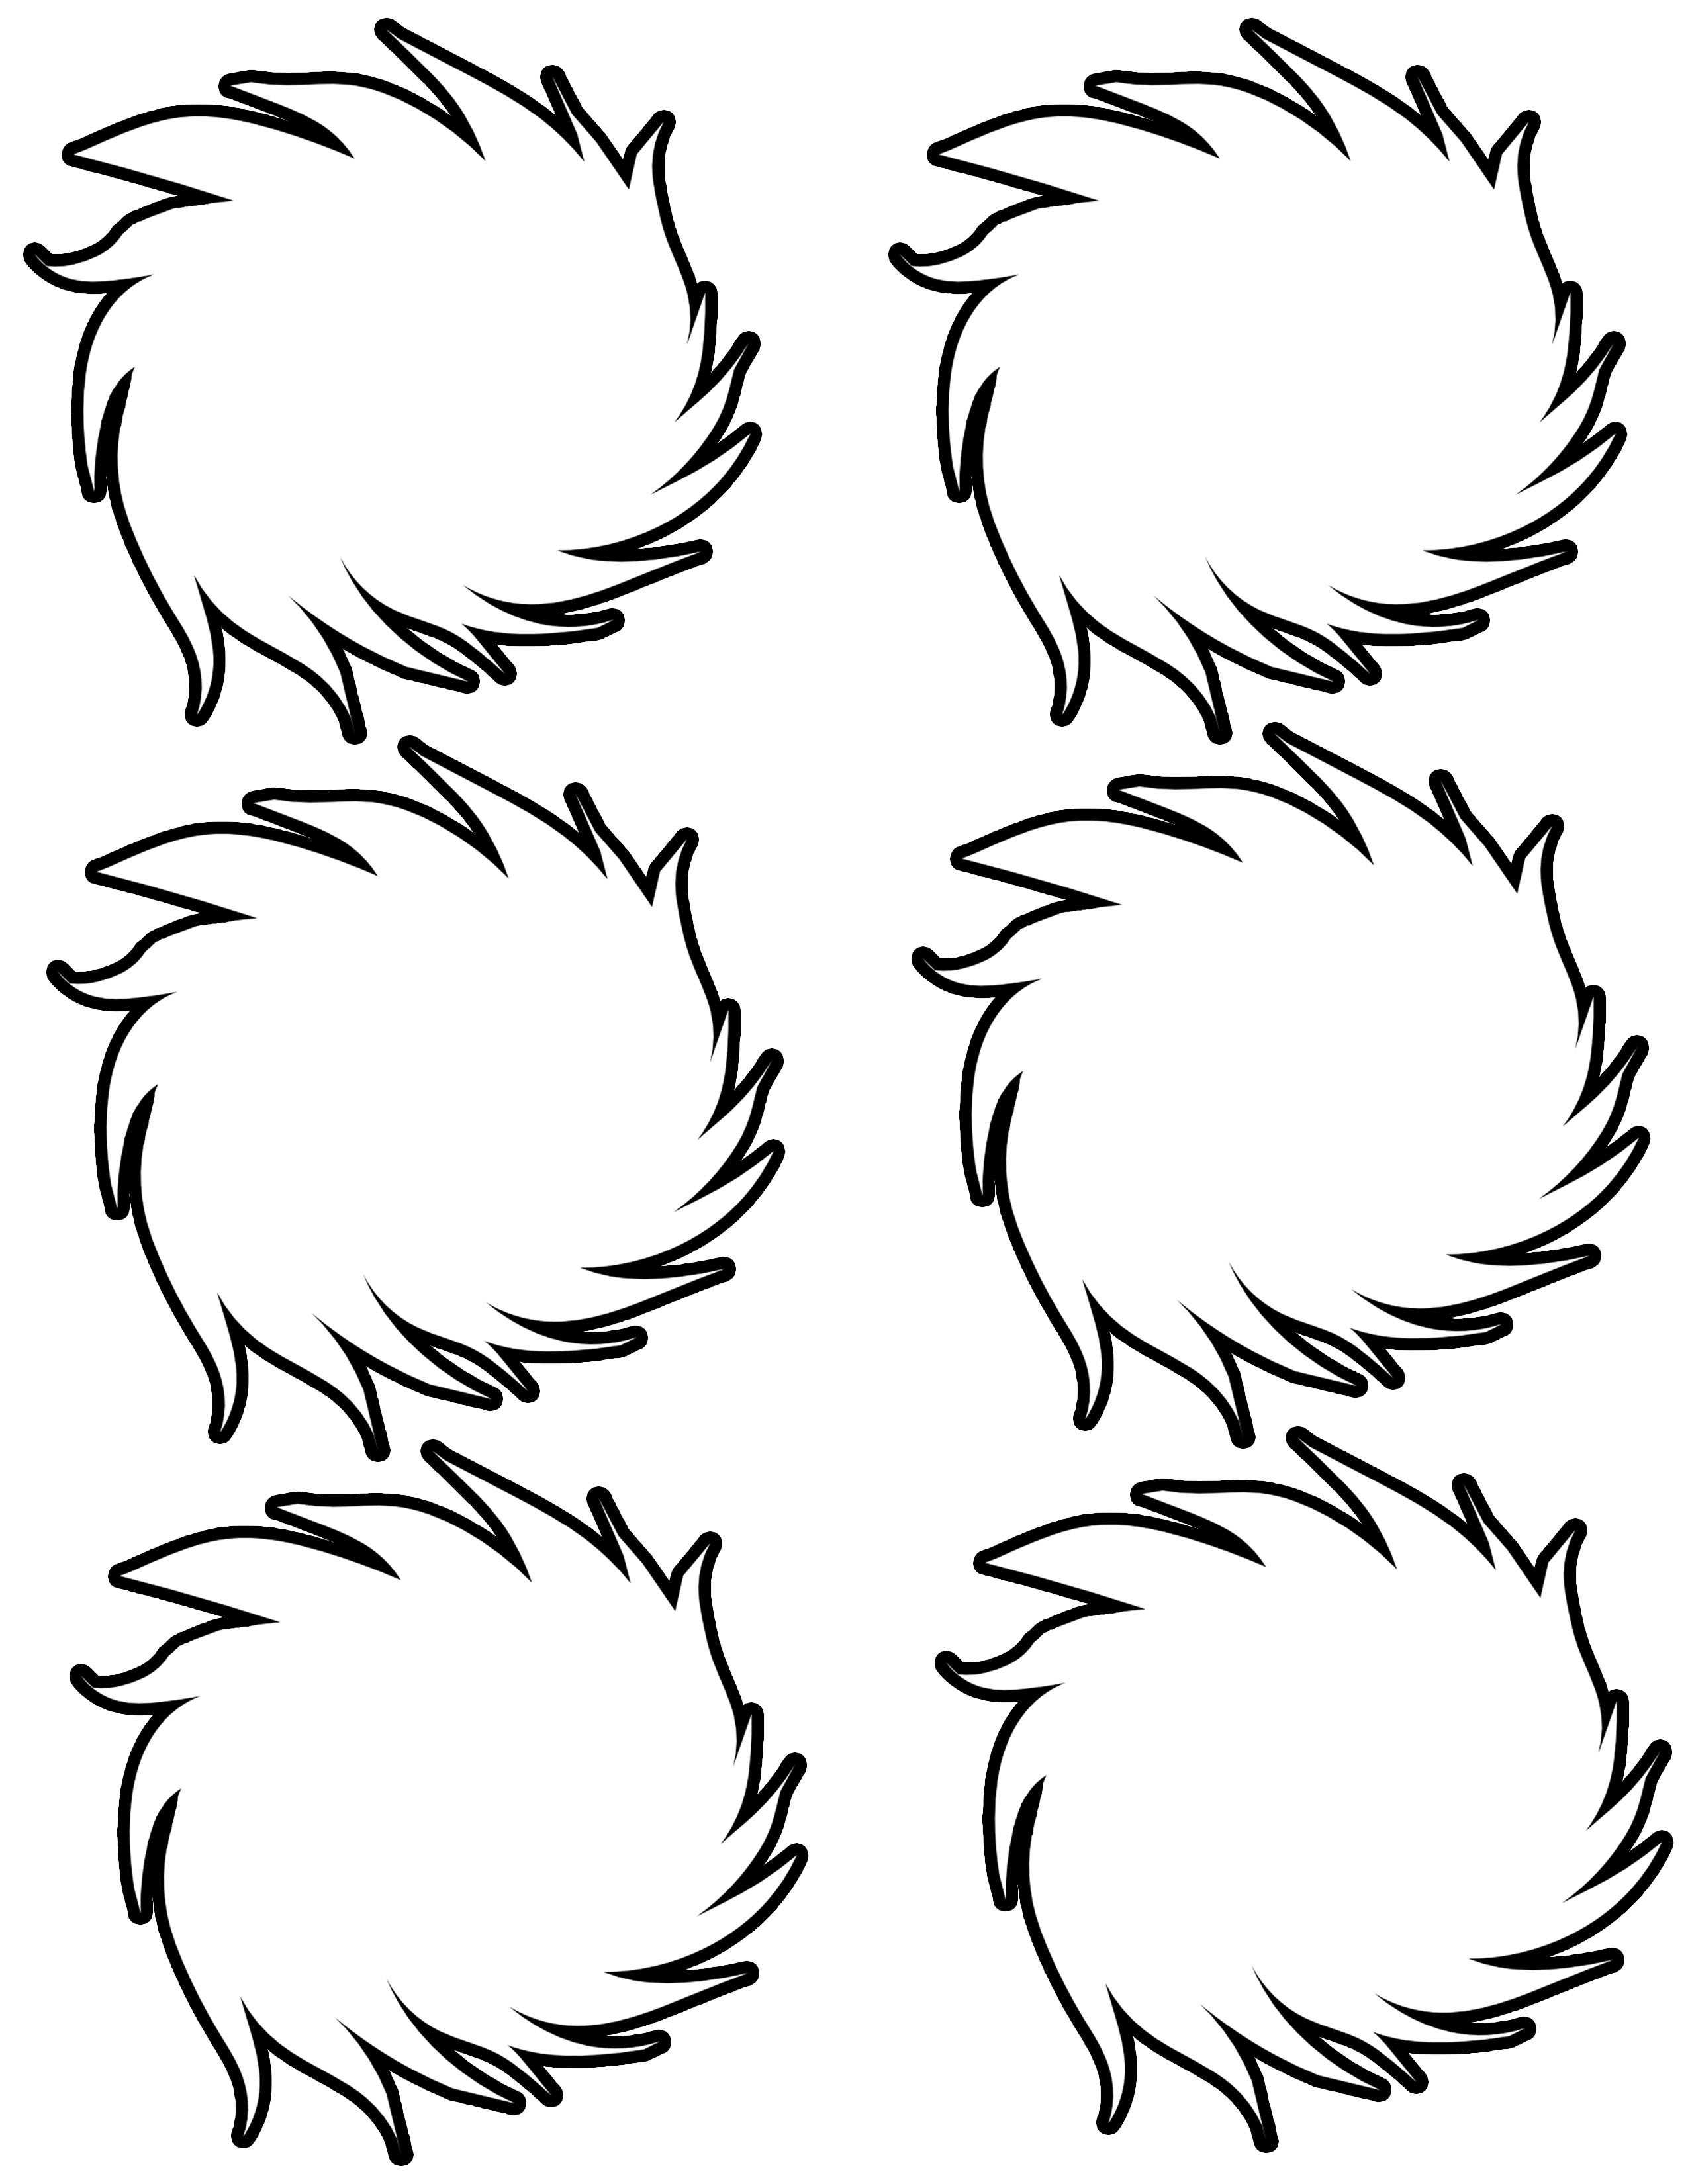 The Best Free Lorax Coloring Page Images Download From